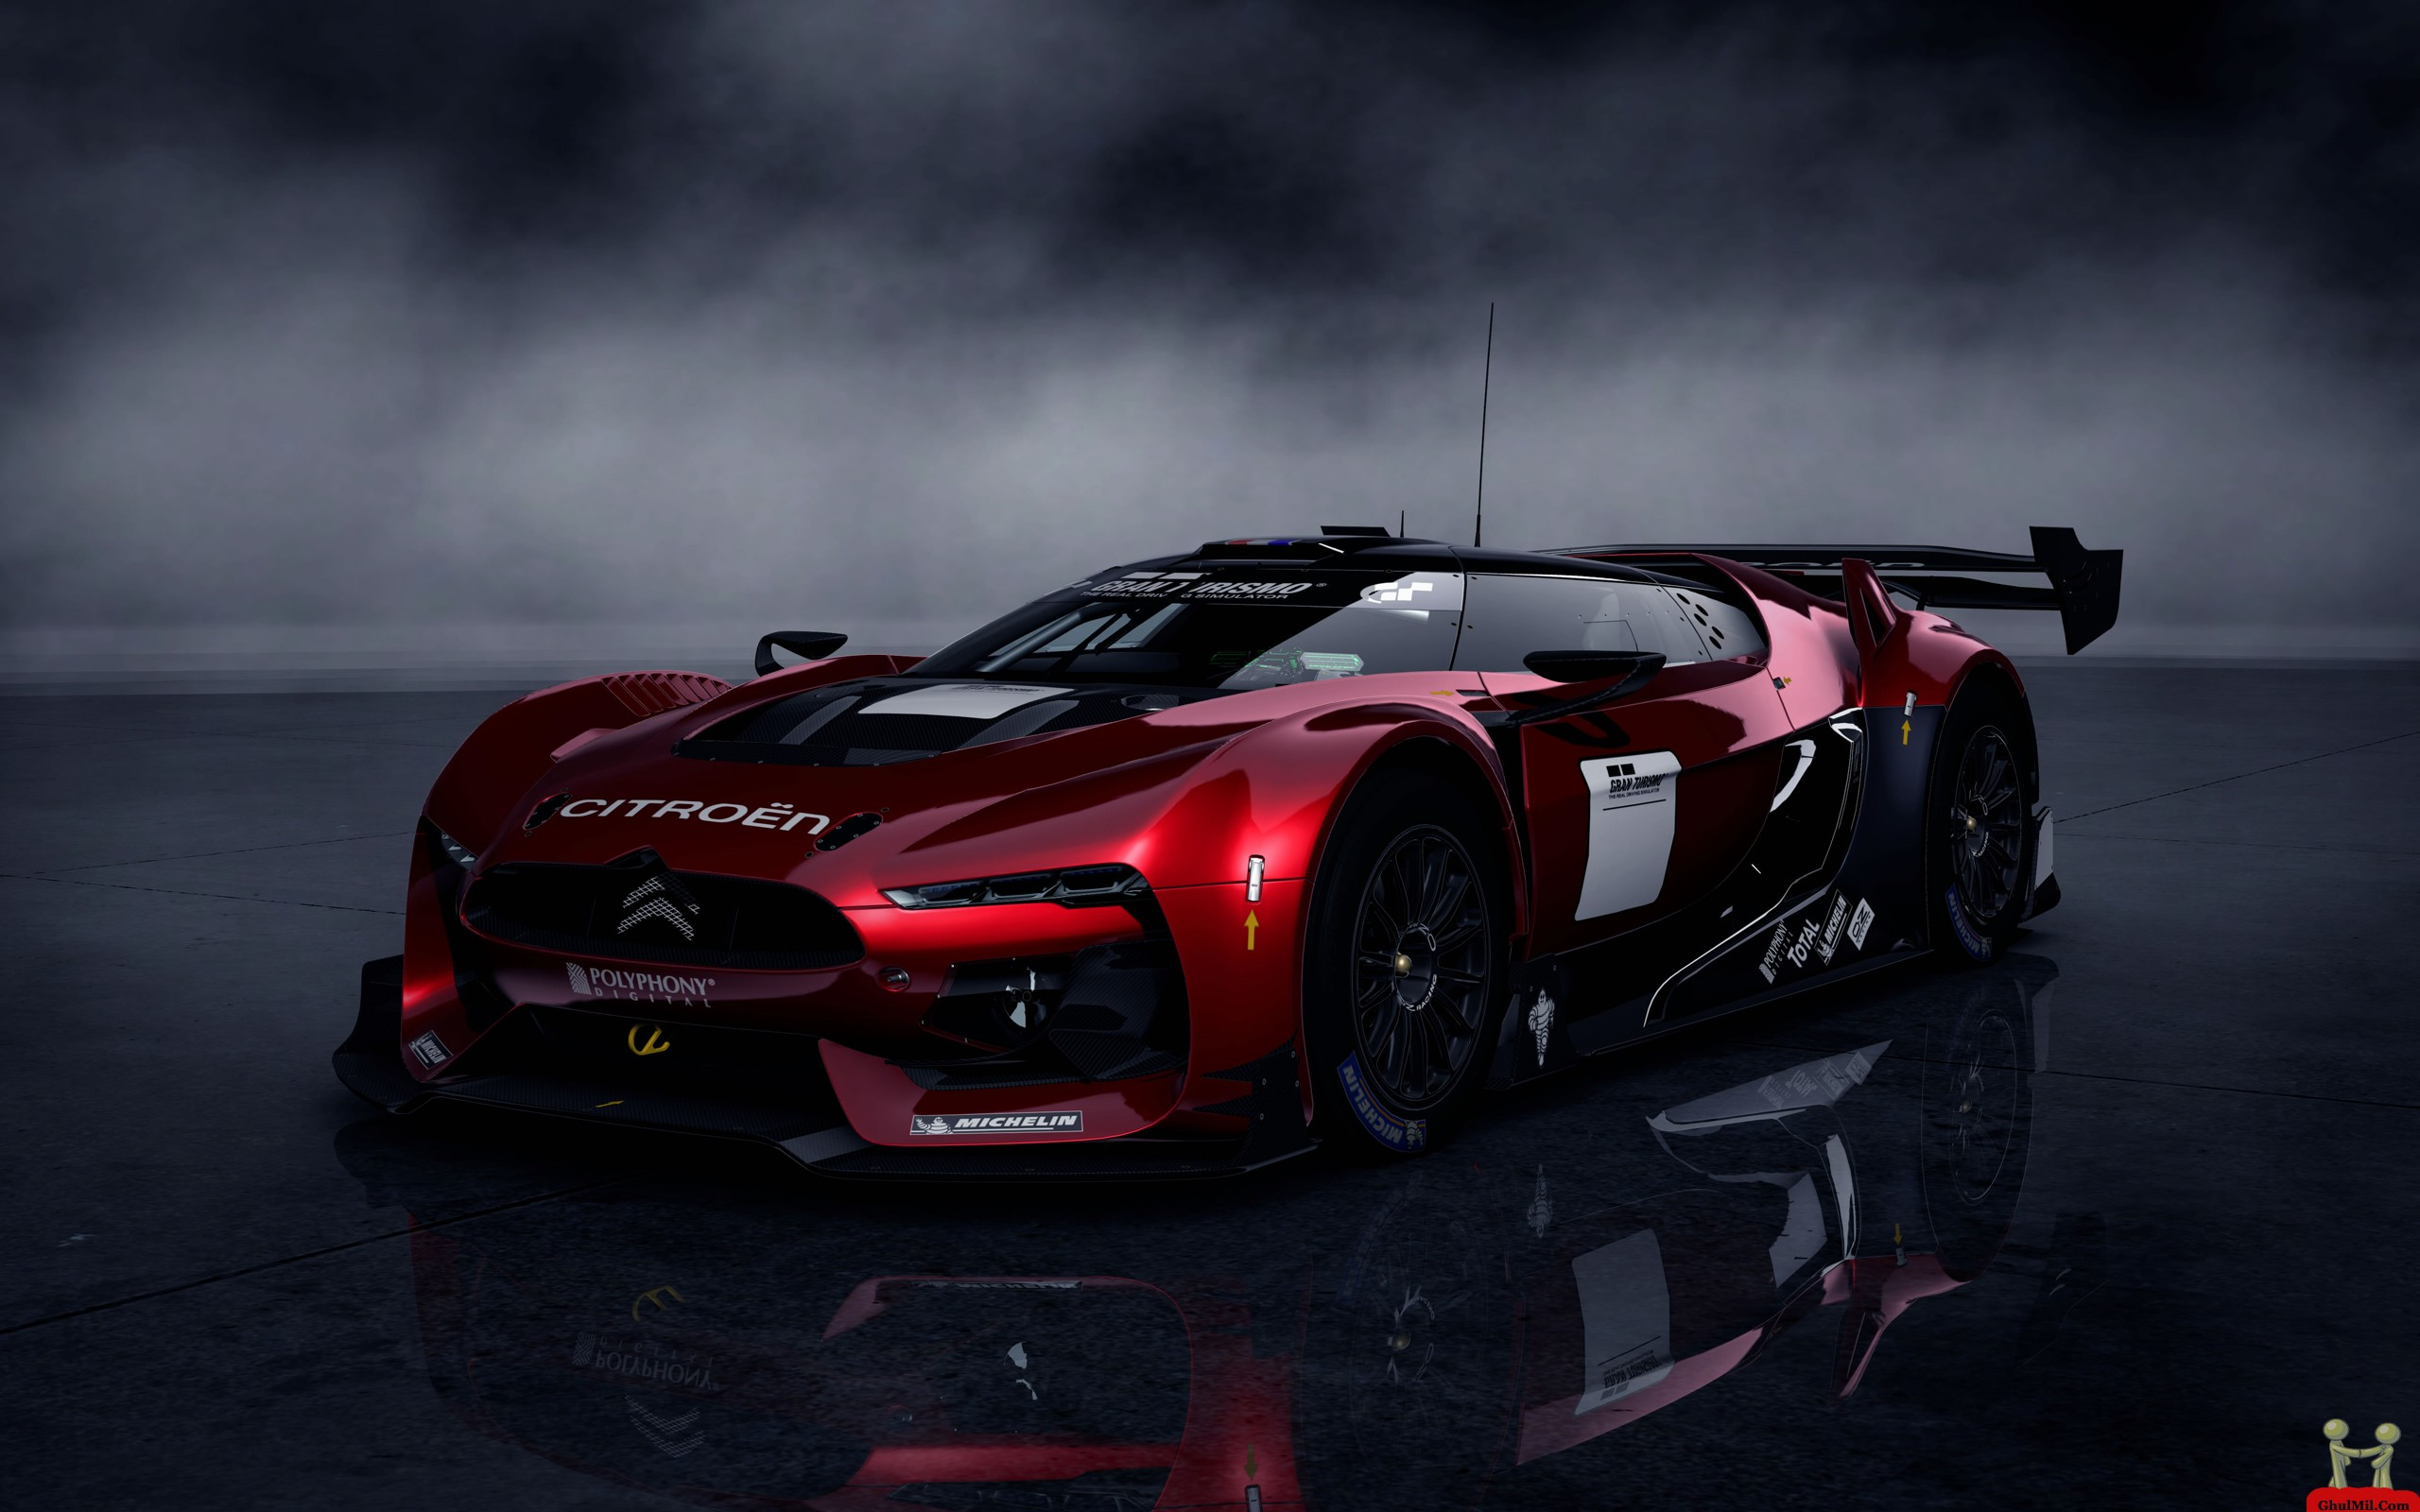 Abstract Amazing Car Wallpaper Auto Speed Cars Amazing Wallpapers